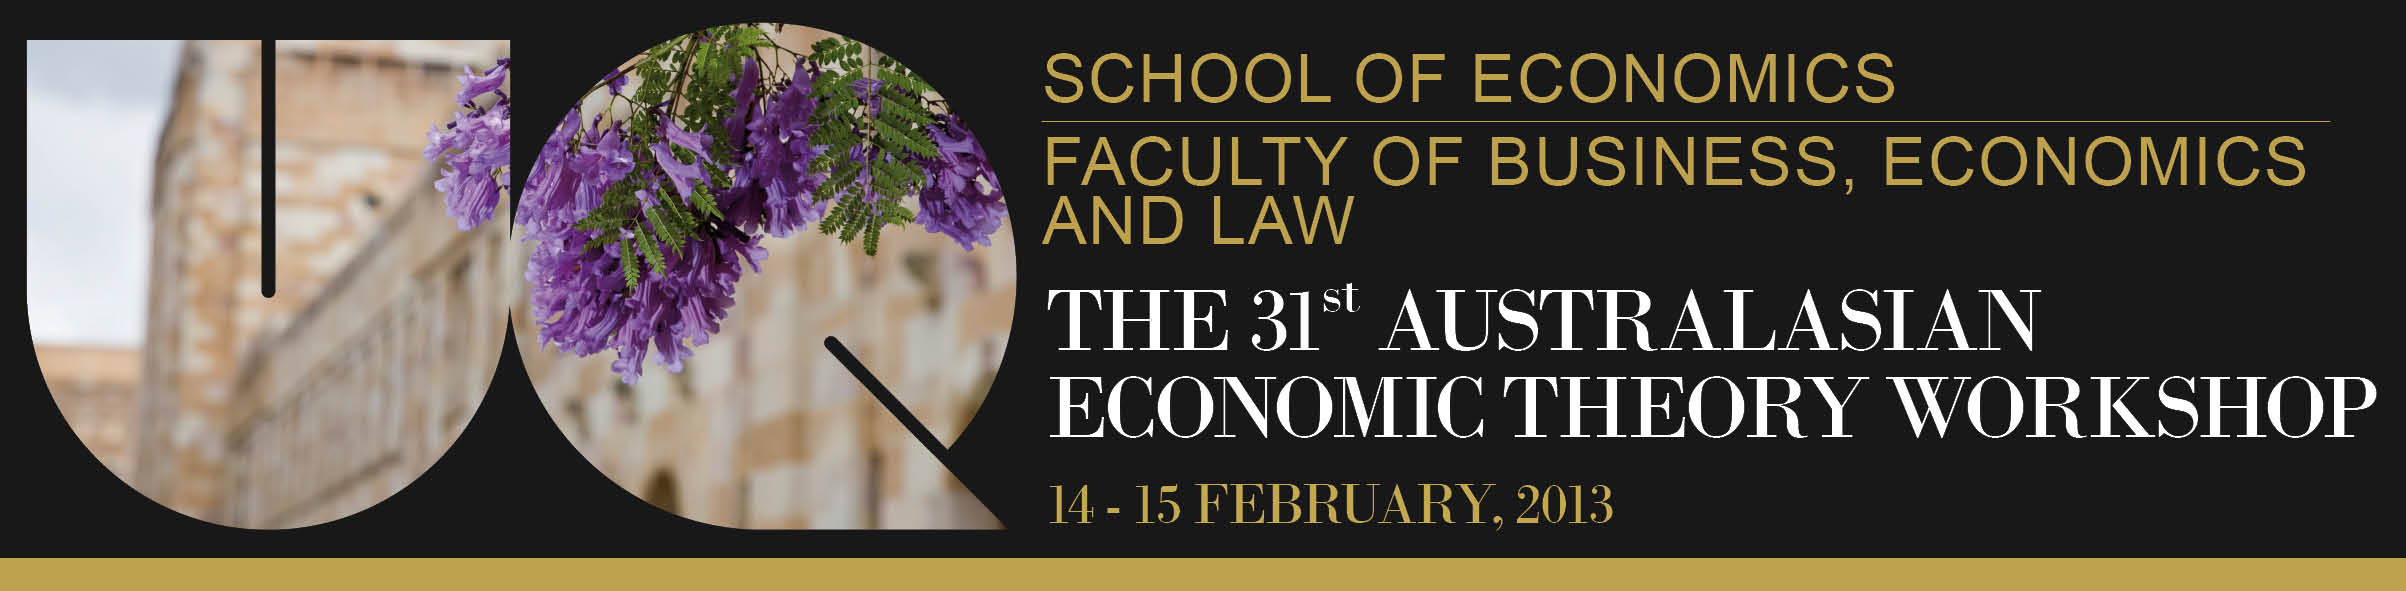 31st Australasian Economic Theory Workshop